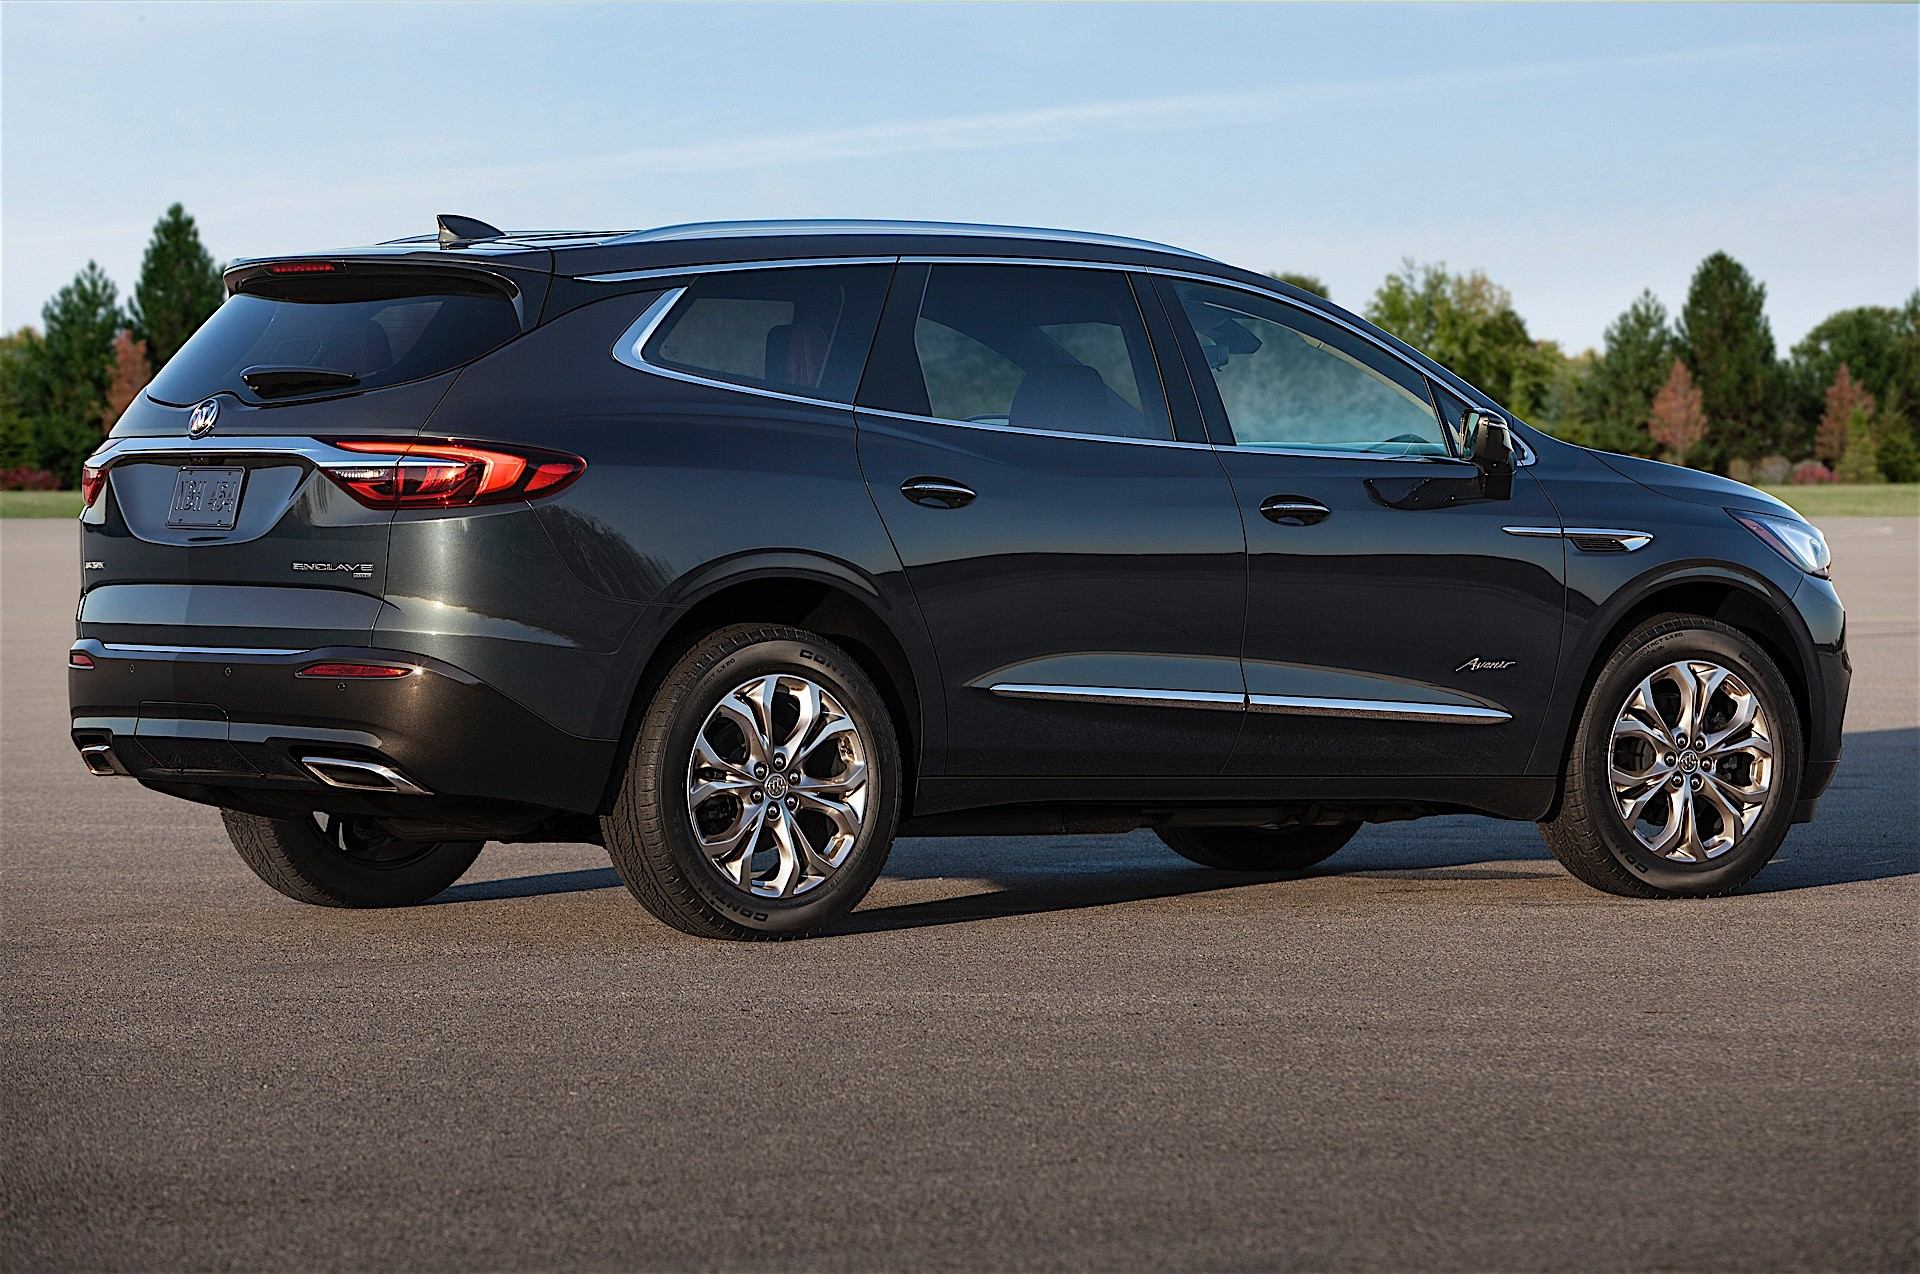 Lfy v6 will debut in 2018 buick enclave 2018 chevrolet traverse autoevolution